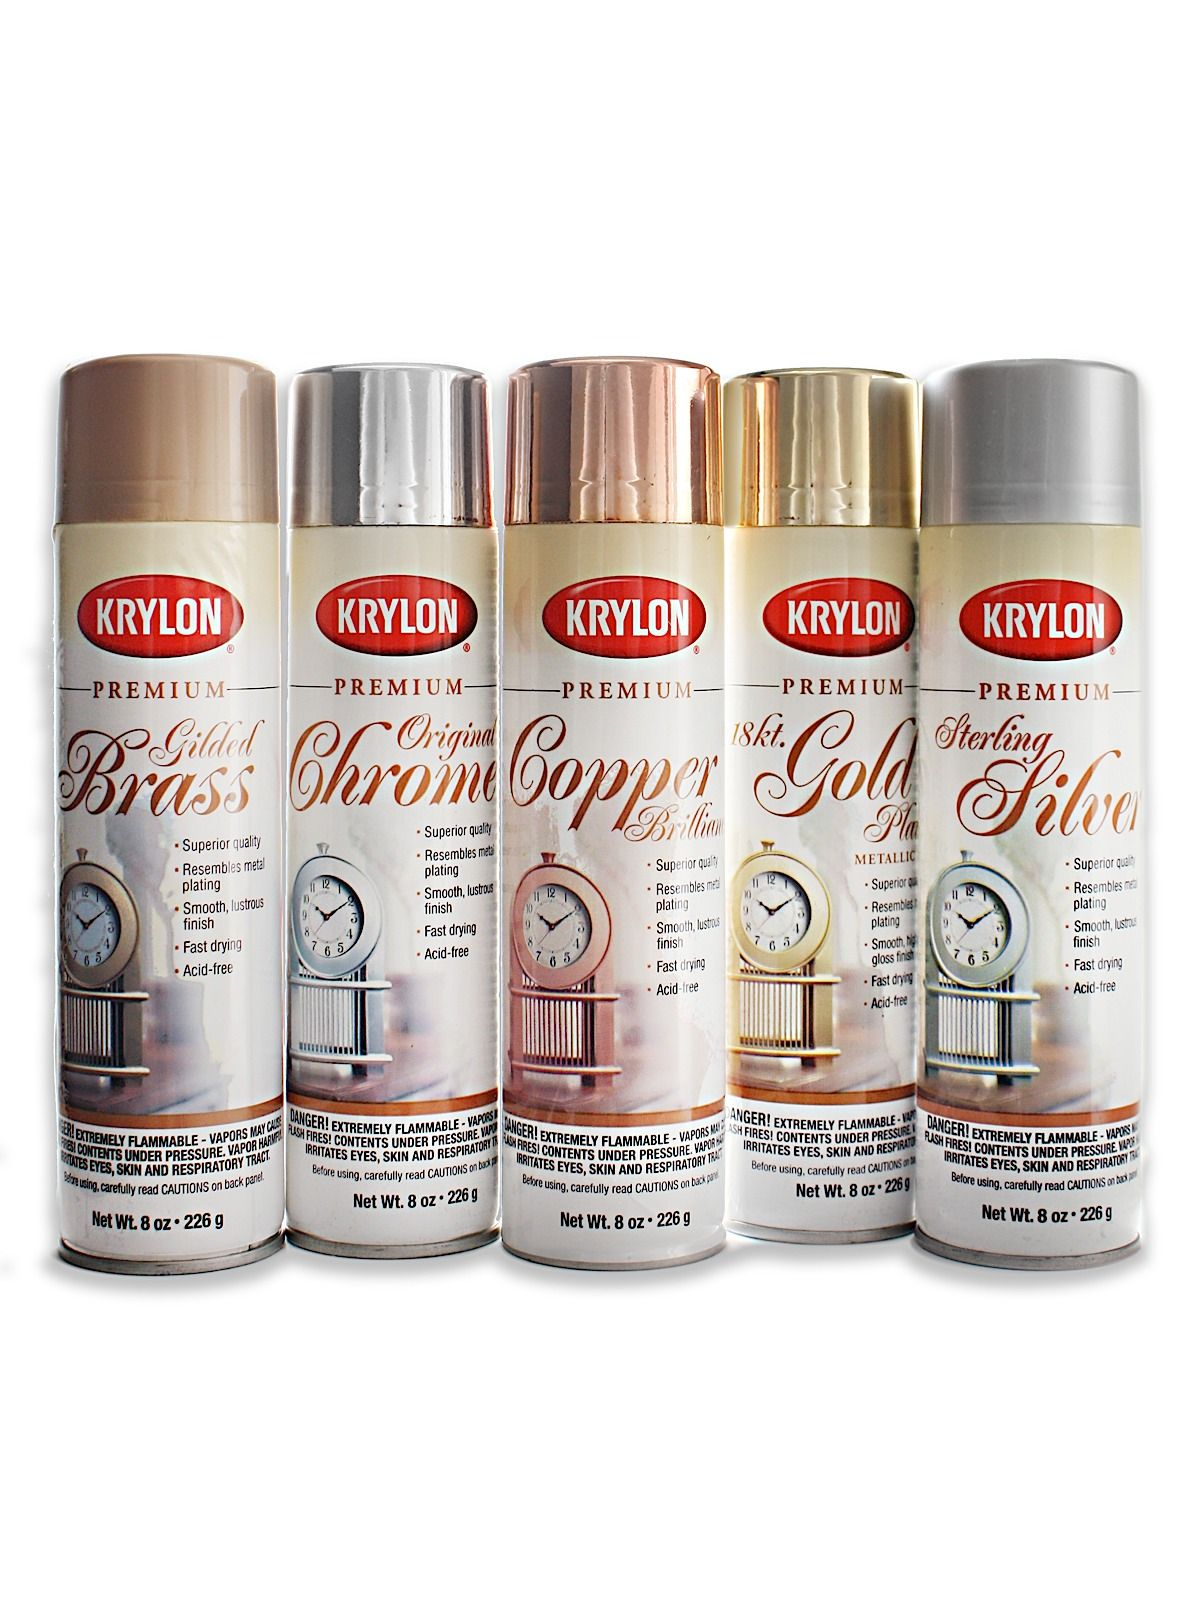 Krylon premium metallic spray paint metallic spray paint spray krylon premium metallic spray paint for a finishing touch that shimmers and shines begin geenschuldenfo Images